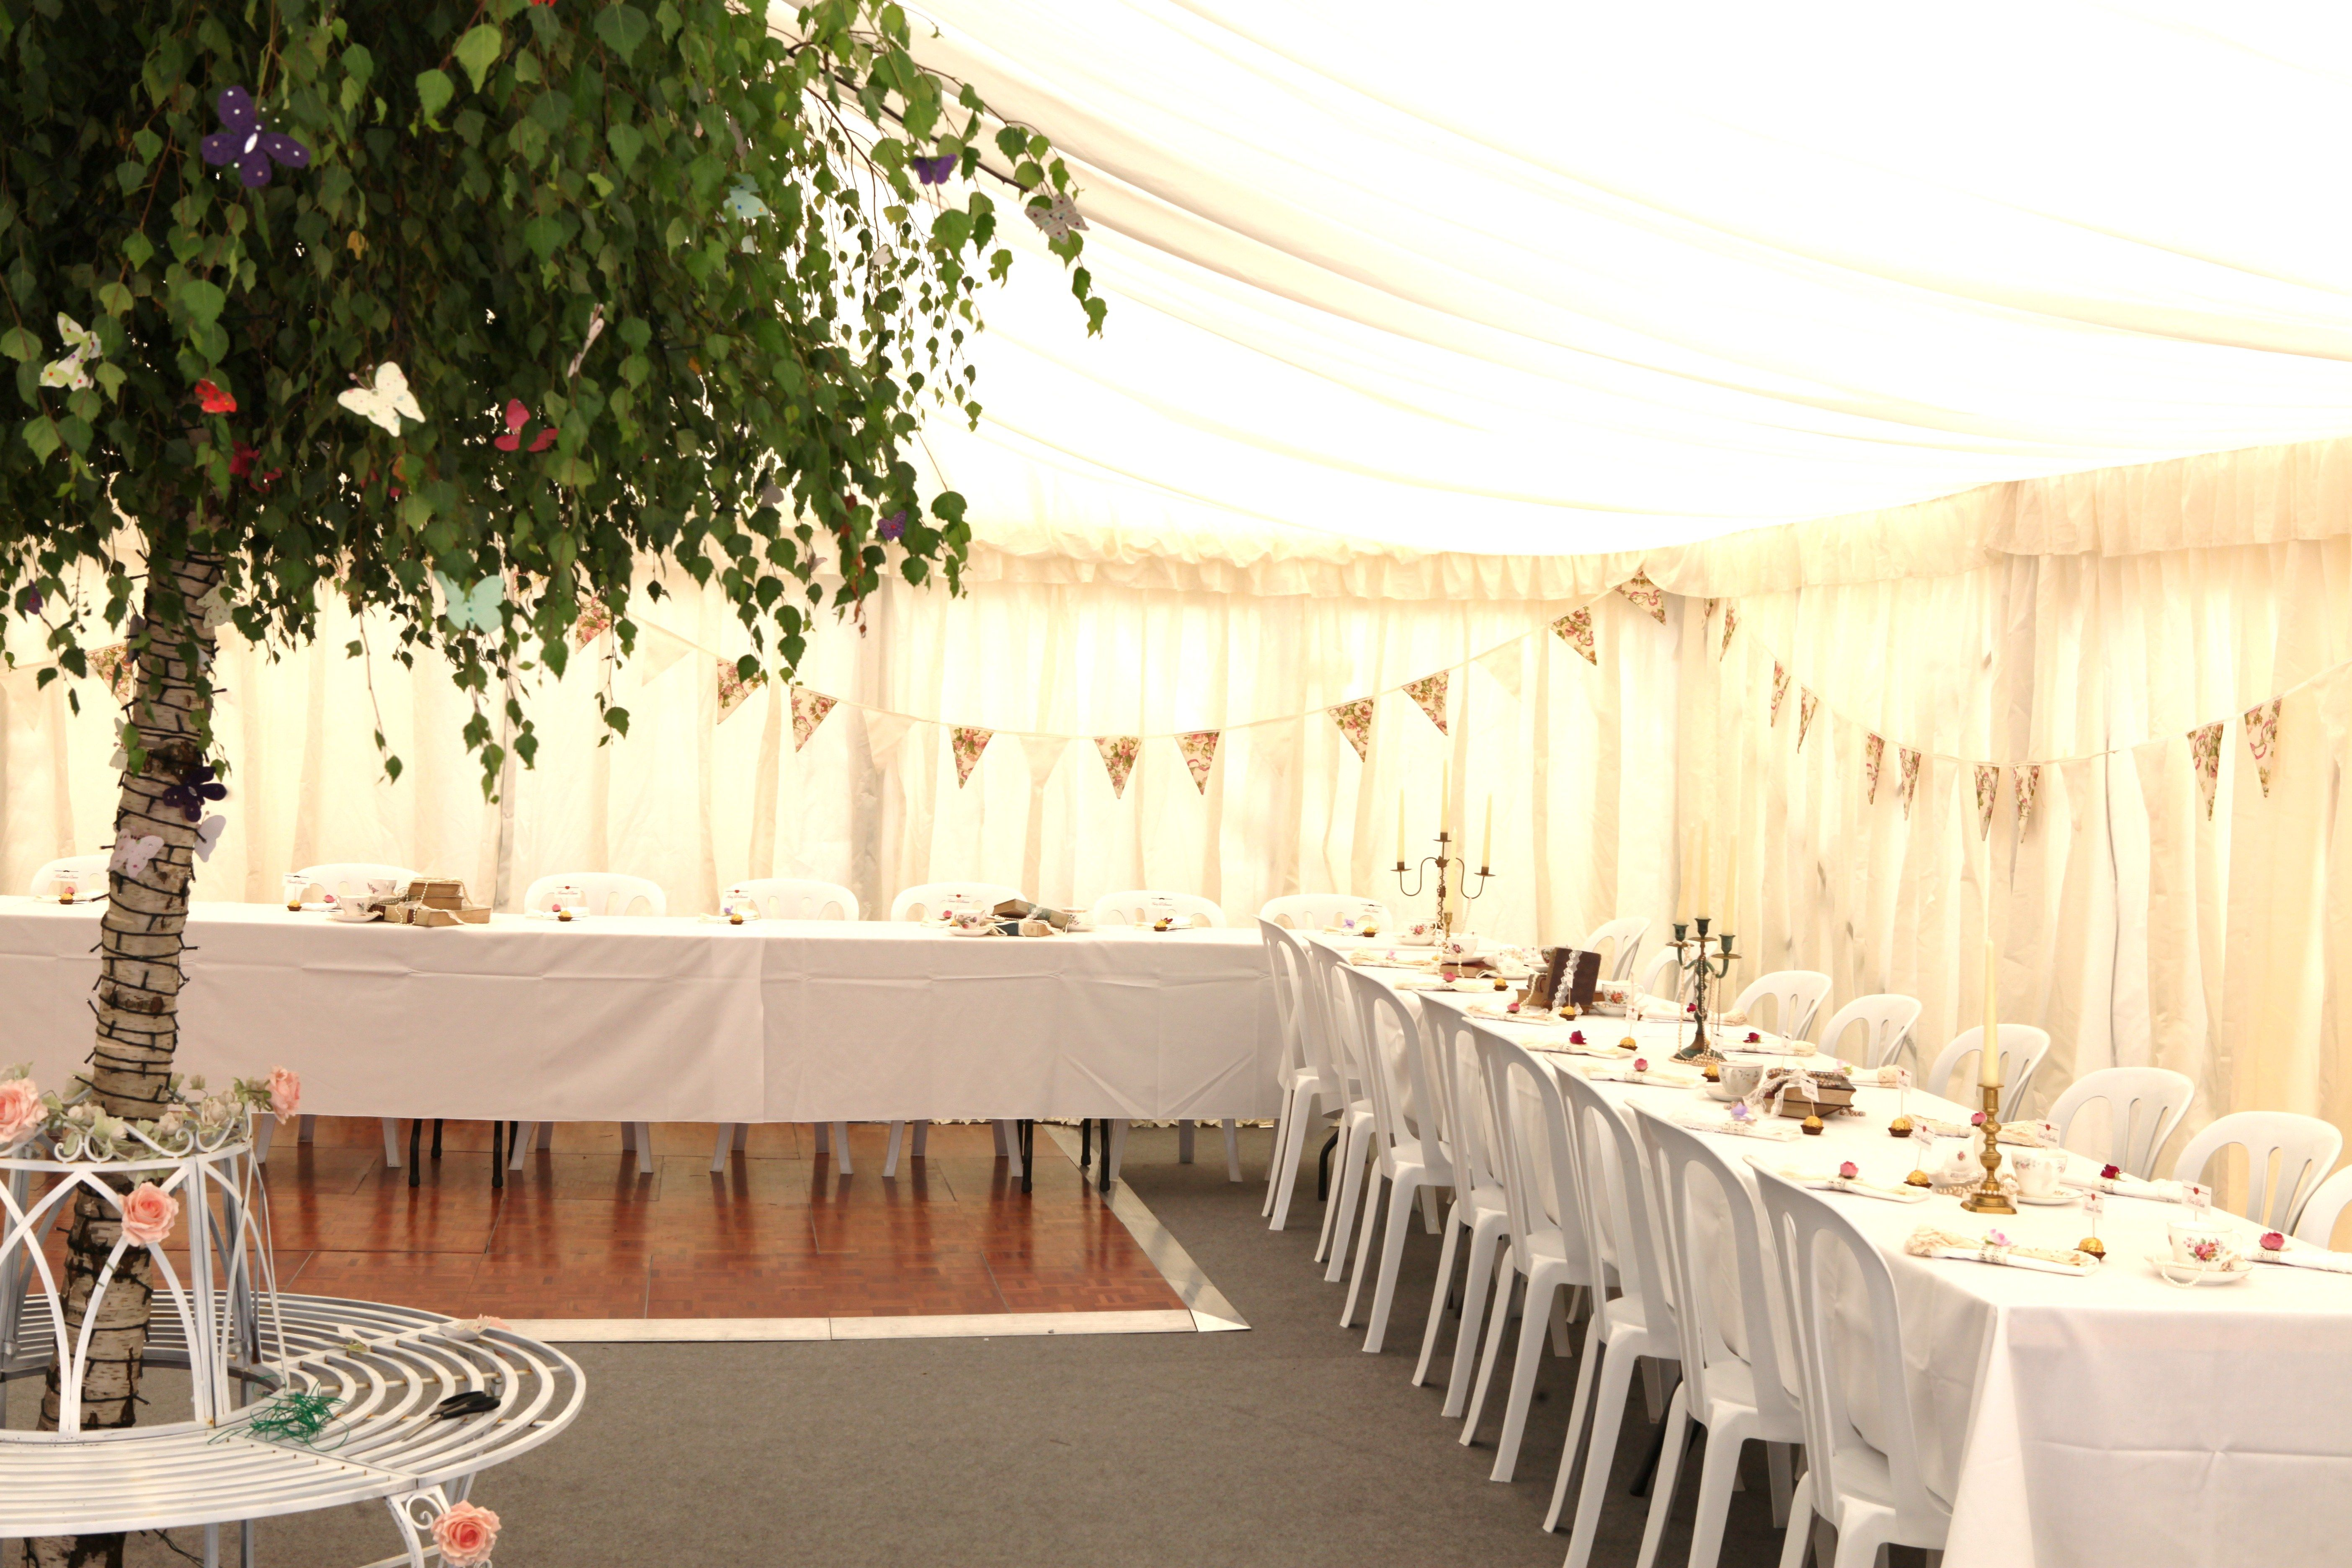 Sweetpea and Ivy wedding marquee decor